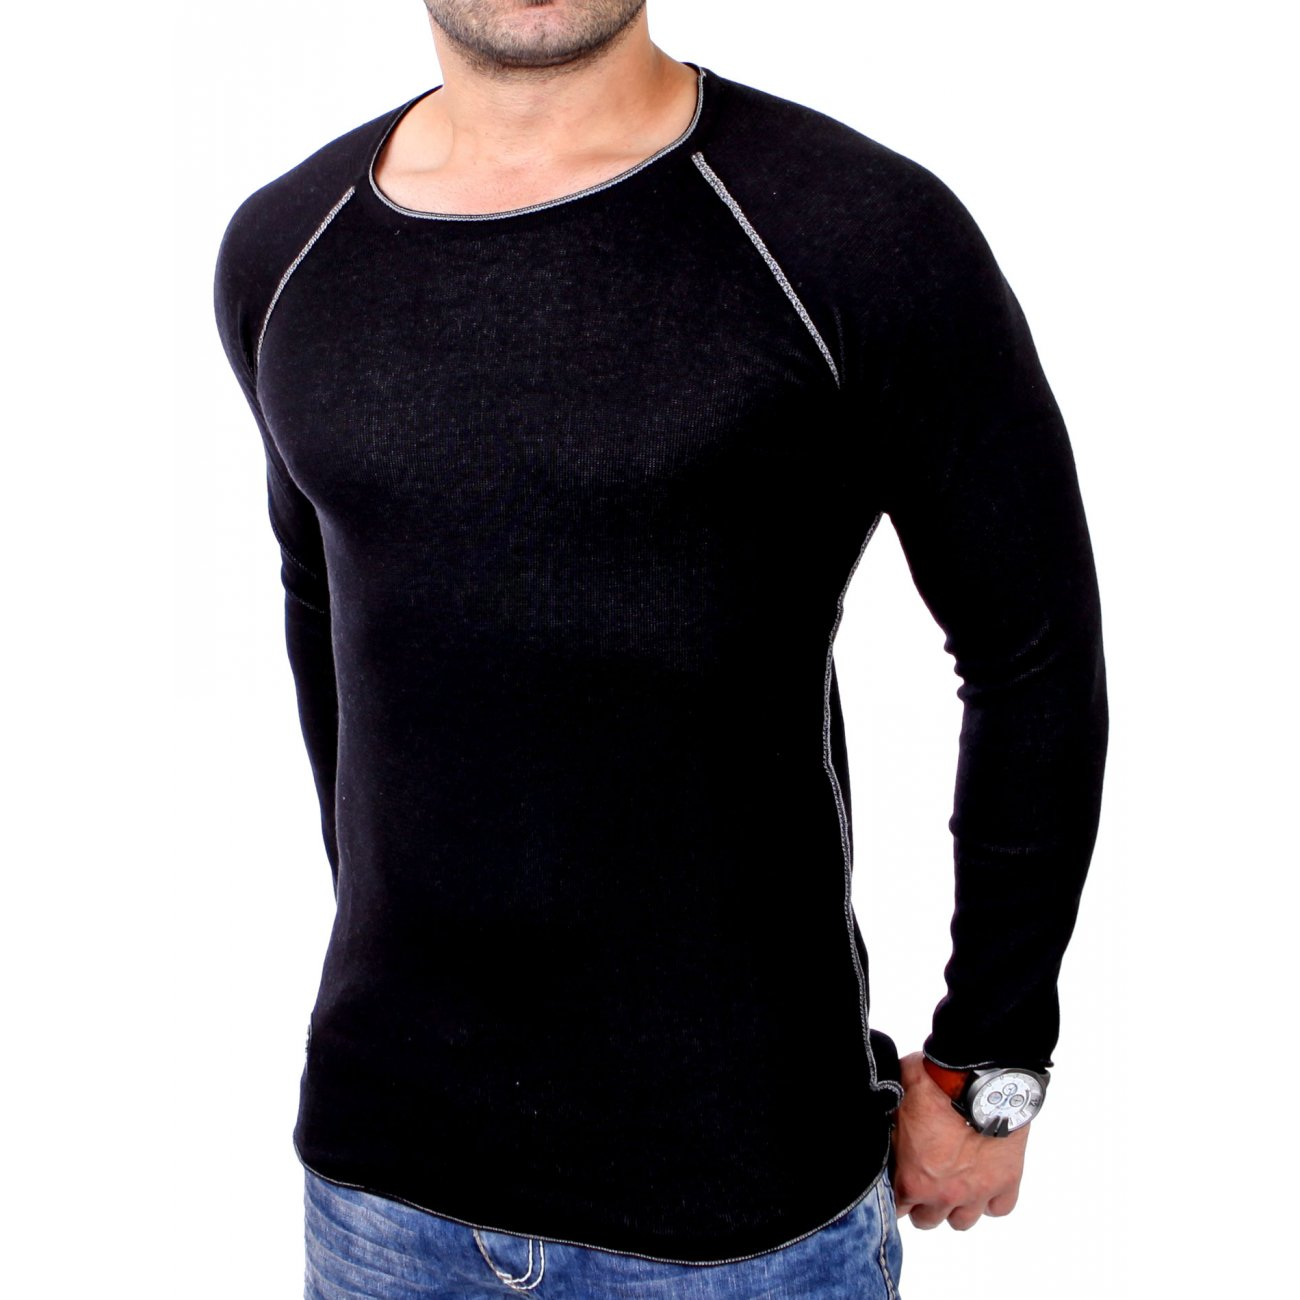 redbridge sweatshirt herren rundhals slim fit pullover. Black Bedroom Furniture Sets. Home Design Ideas